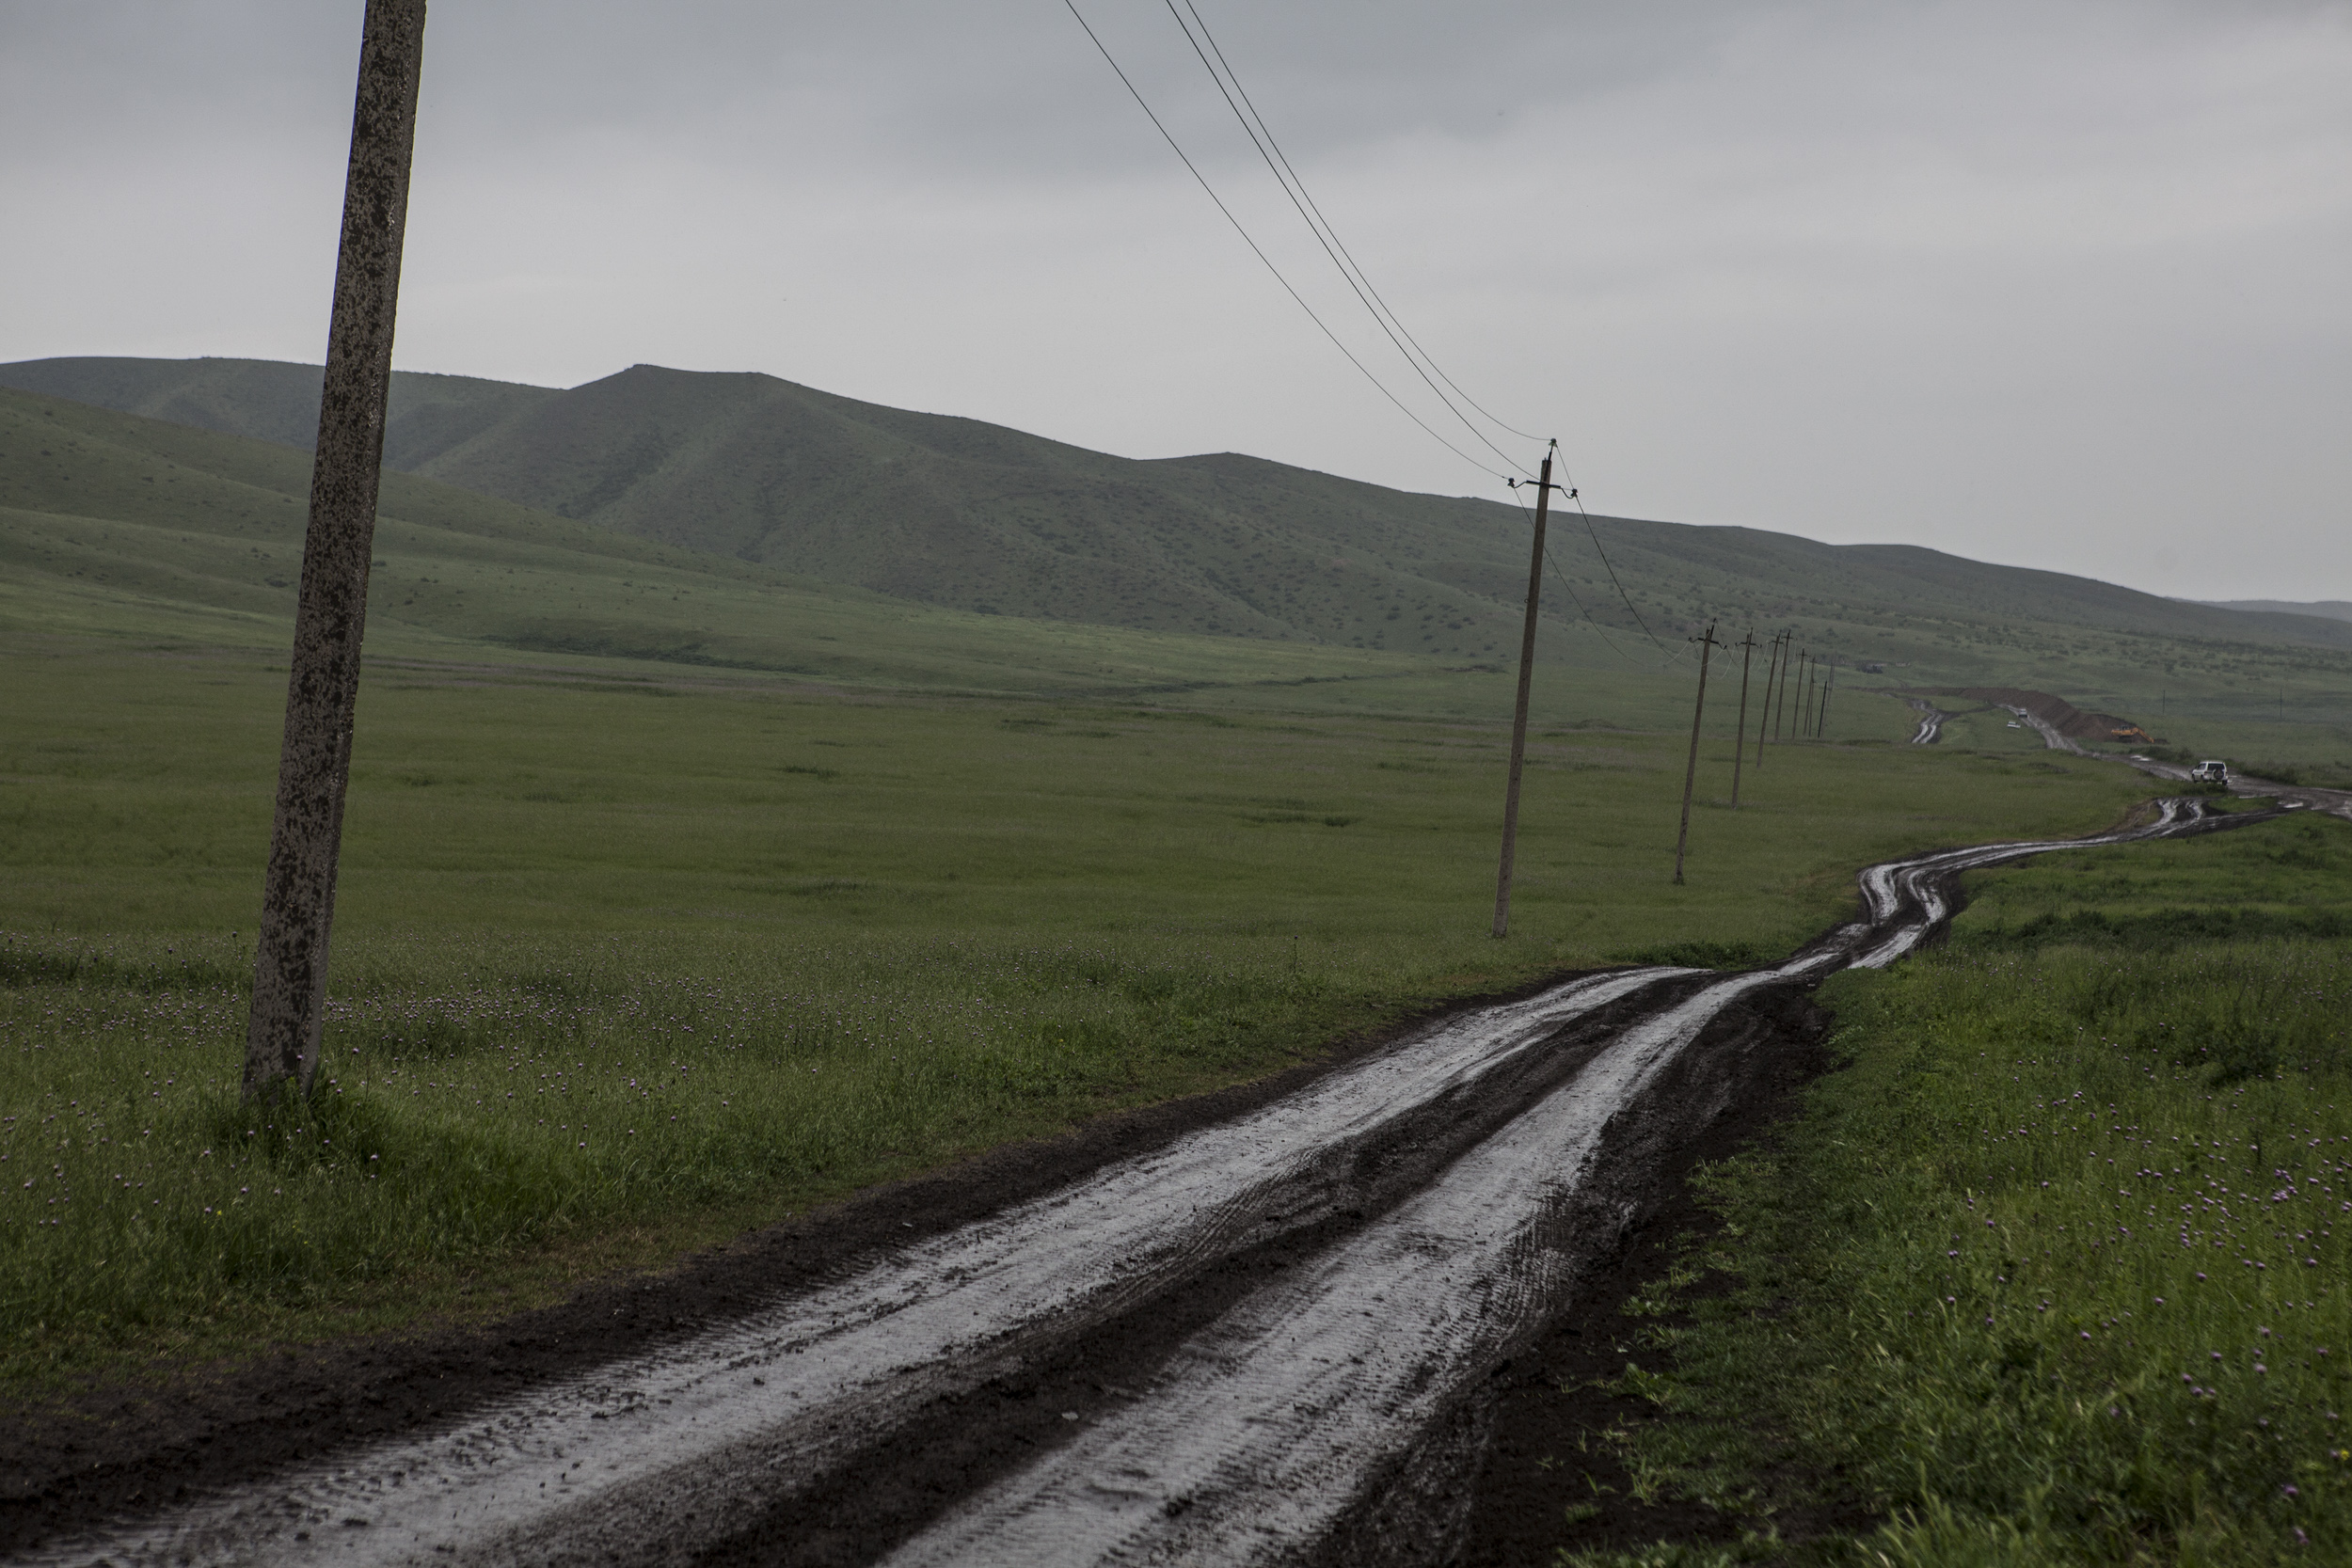 The remainder of this gallery are photographs from April 30; the northern borders of the Republic of Nagorno Karabakh where soldiers remain to protect.